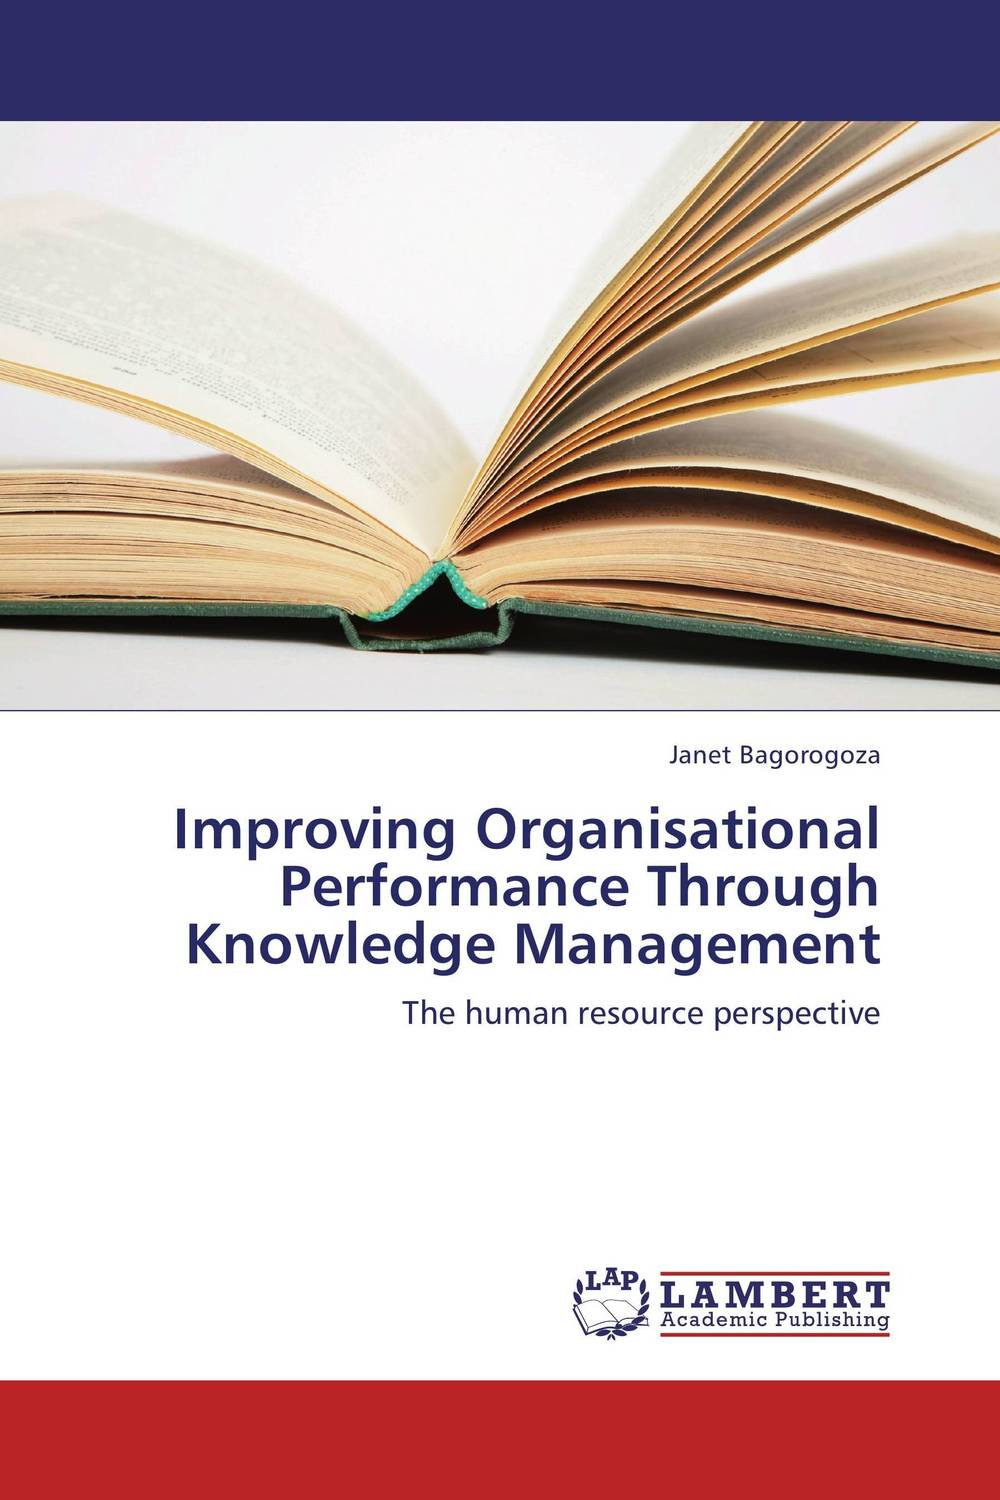 Improving Organisational Performance Through Knowledge Management dr irrenpreet singh sanghotra dr prem kumar and dr paramjeet kaur dhindsa quality management practices and organisational performance